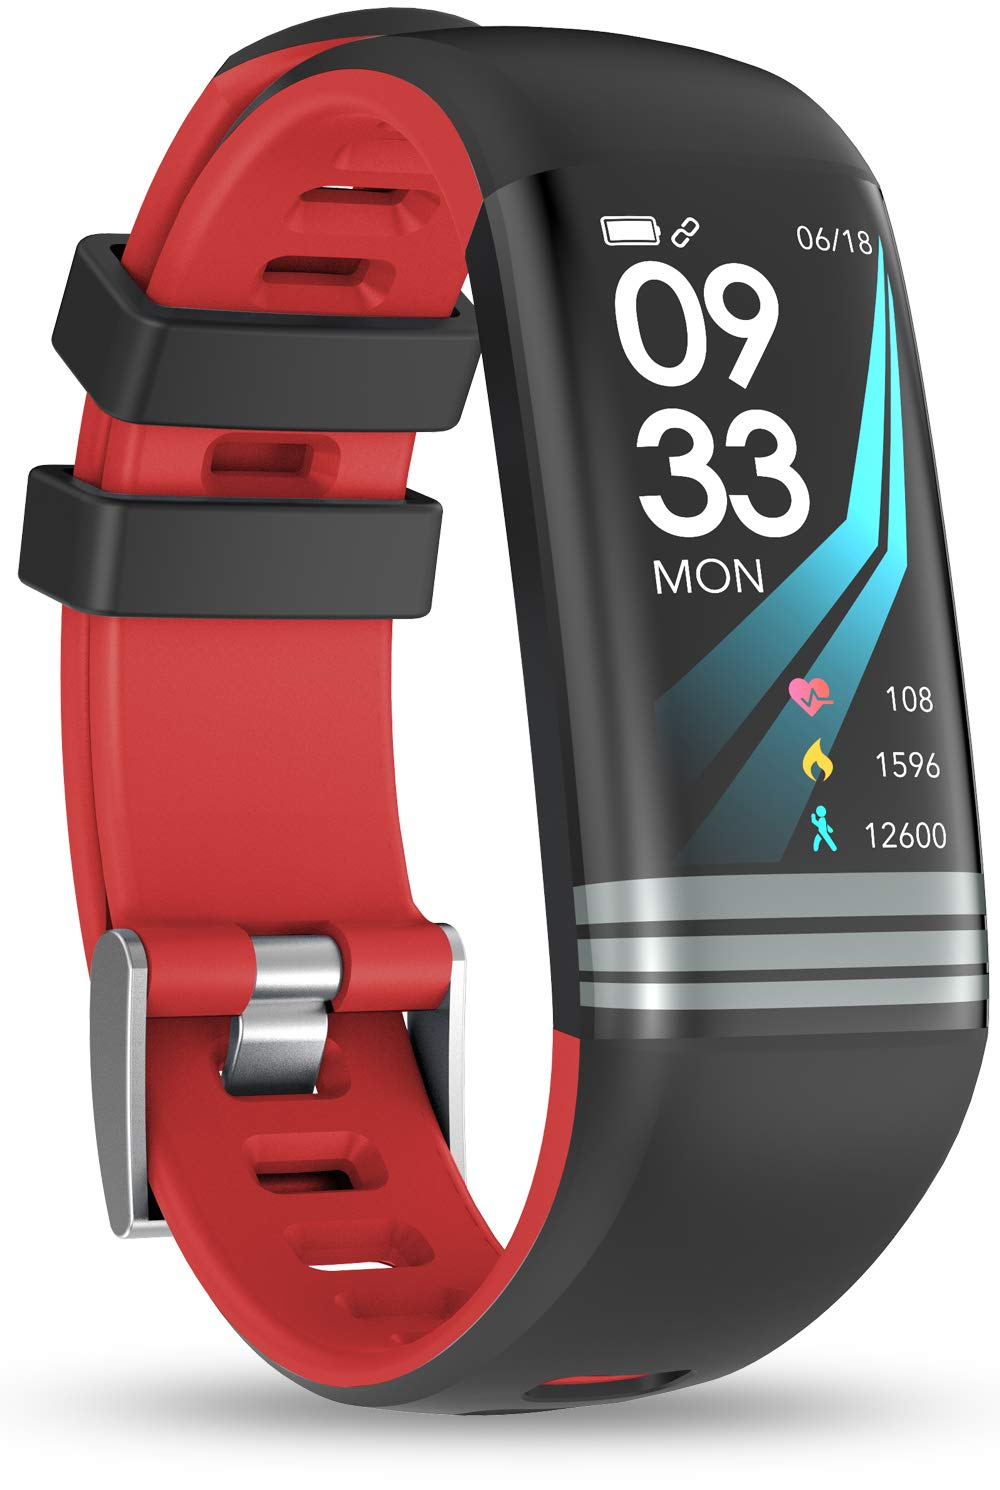 Smaate Fitness Tracker for Women, Smart Watch with Heart Rate Monitor HR, Pedometers and Calories, Activity Tracker Watch with Sleep Monitor and SNS Notification, for Girls, Red